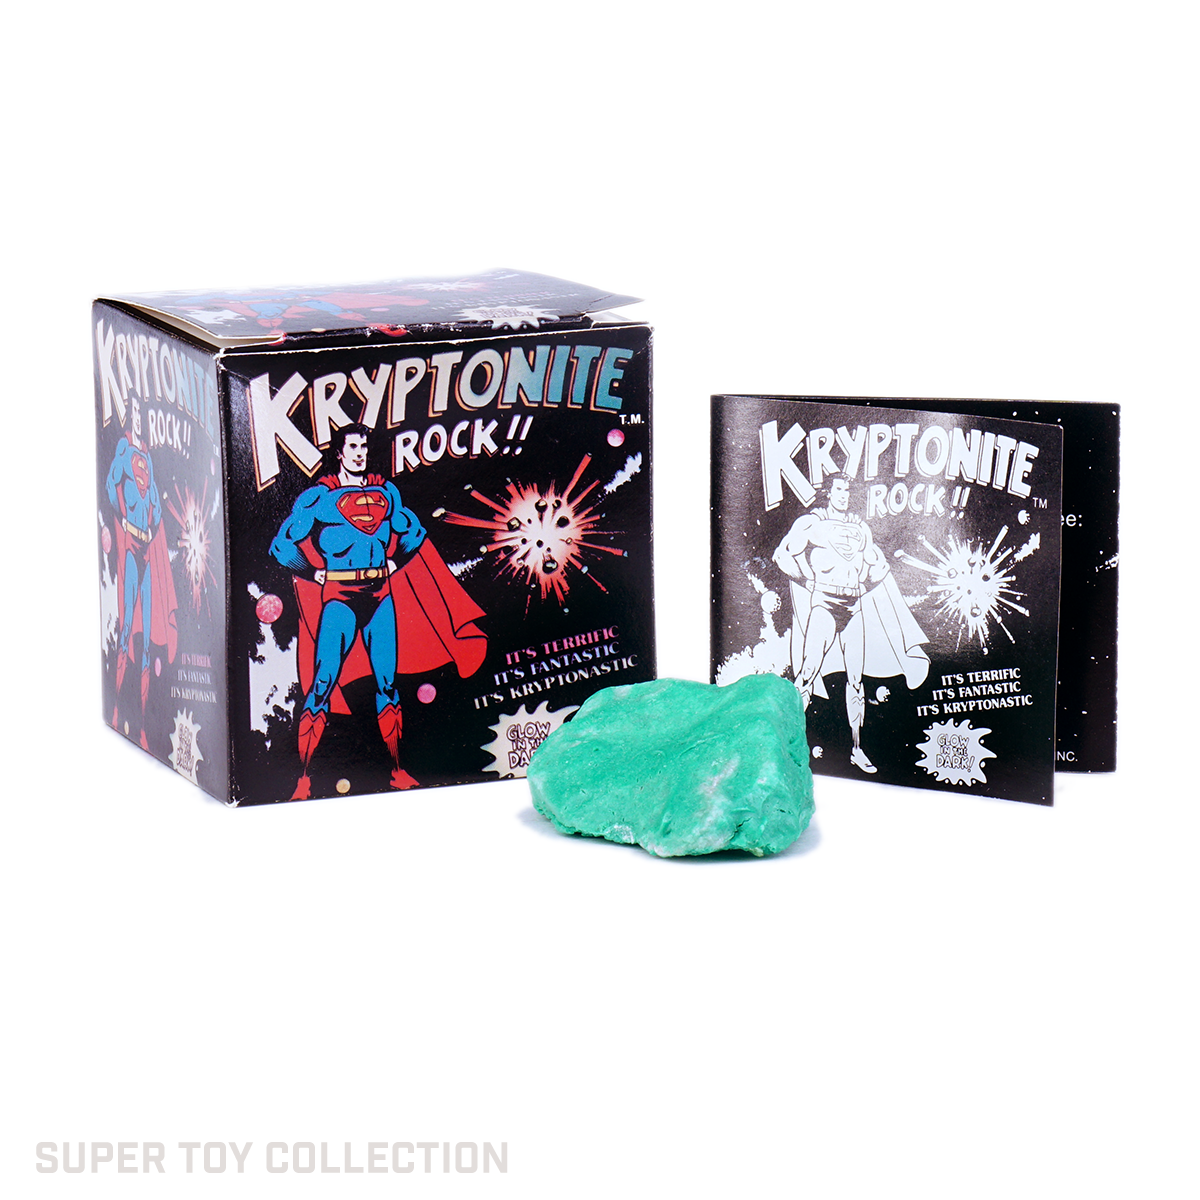 Superman Kryptonite rock toy in box